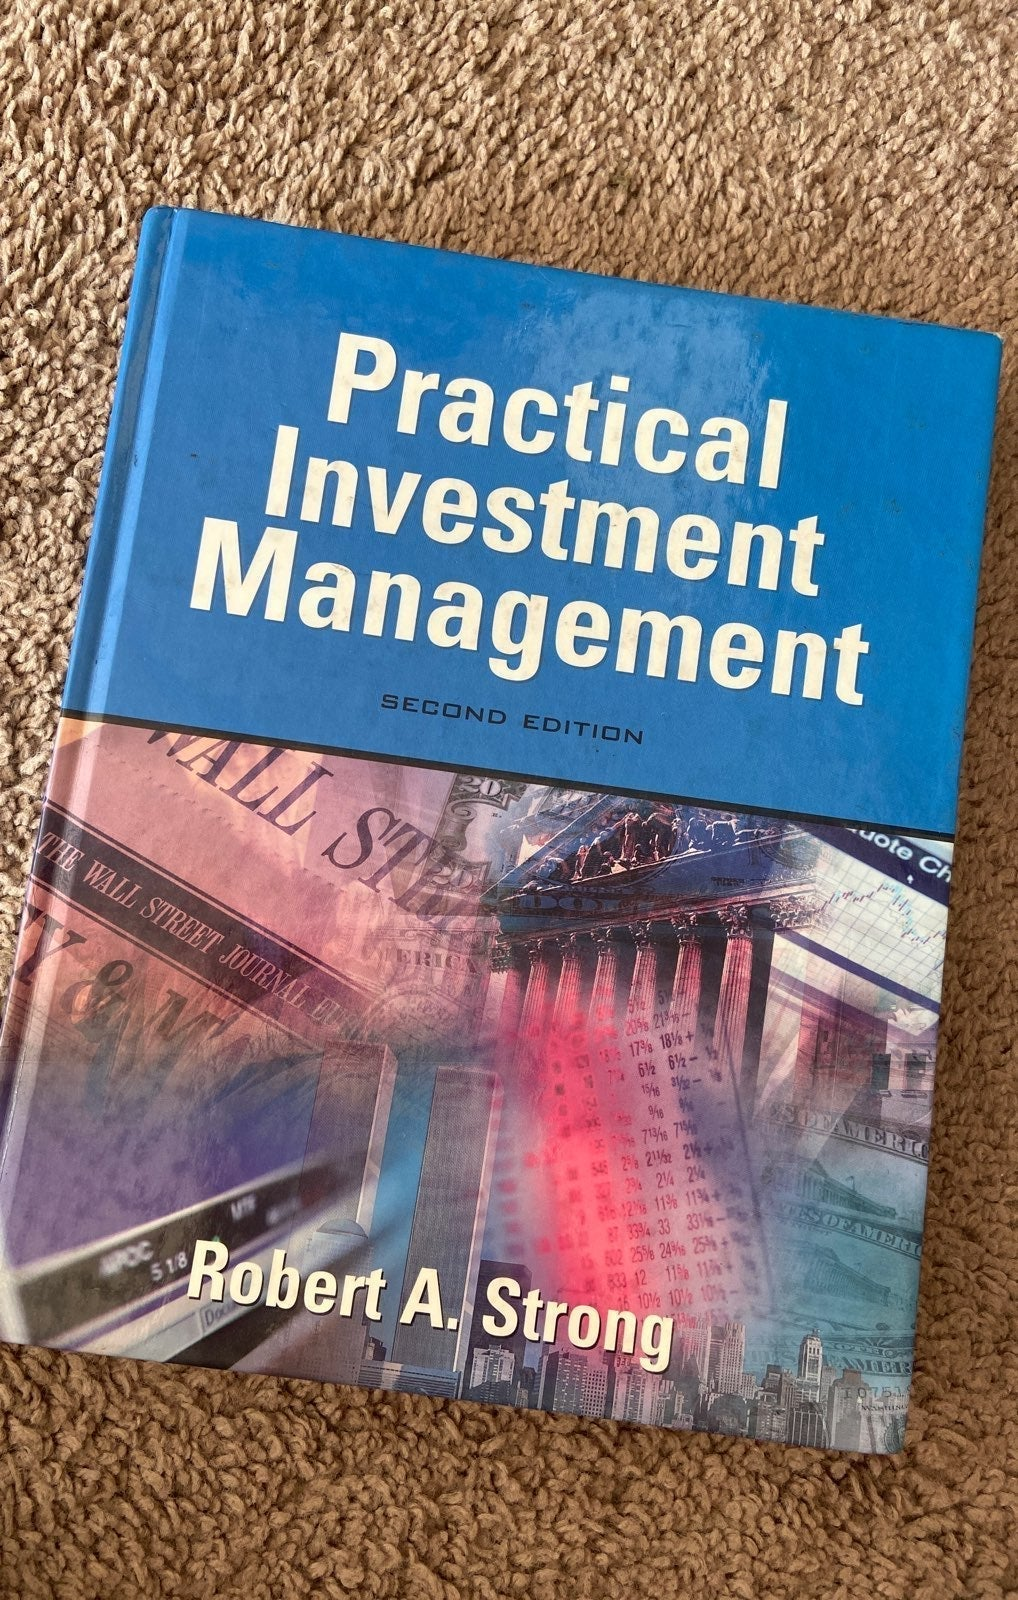 Investment book